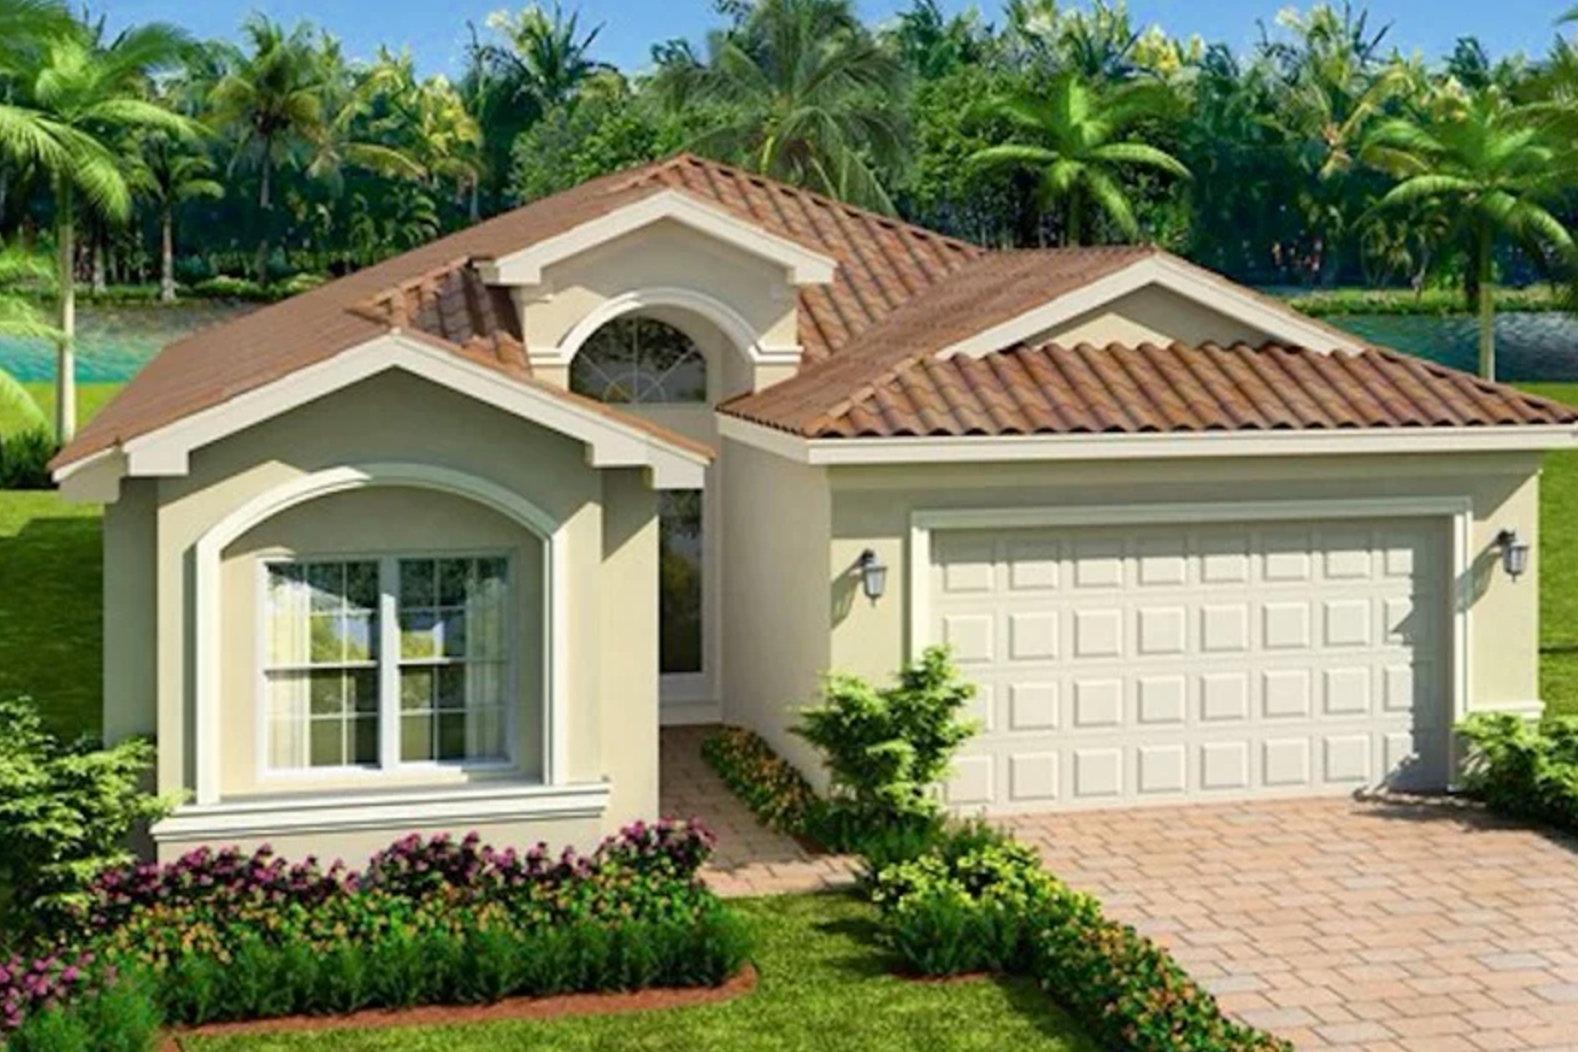 GL Homes has bought new homesites to expand Valencia Bay in Boynton Beach, FL.